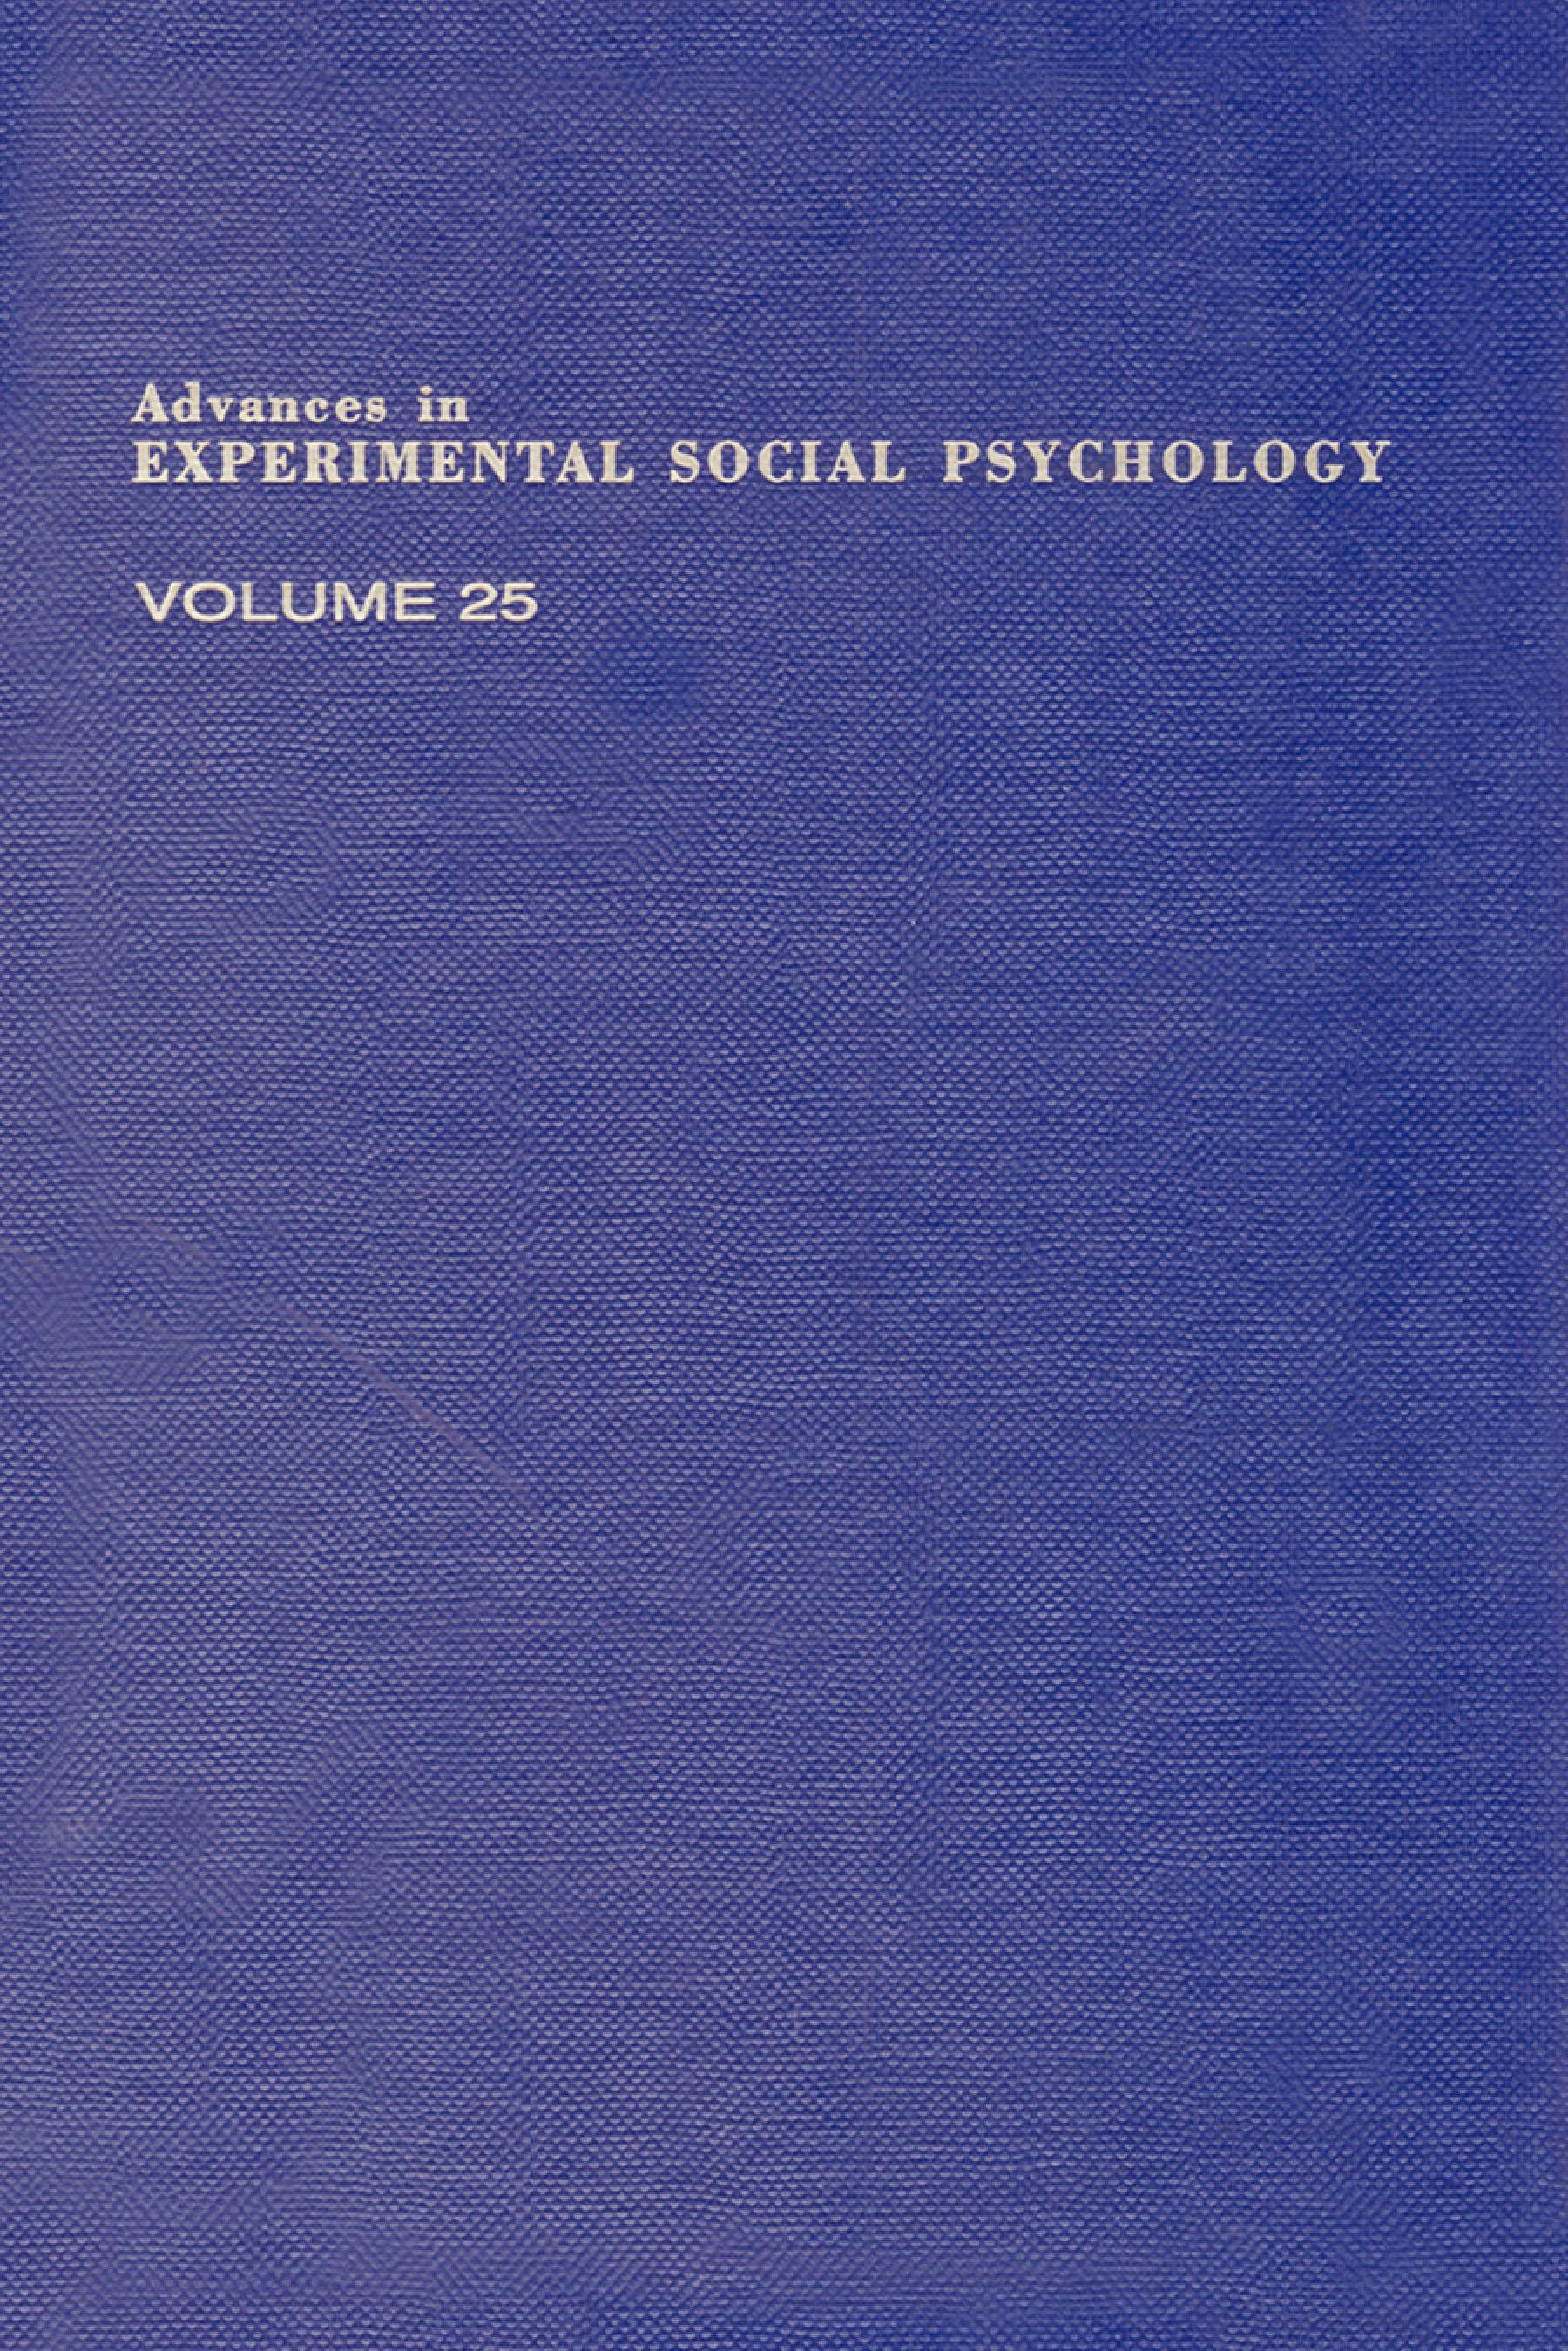 Advances in Experimental Social Psychology, Volume 25: Volume 25